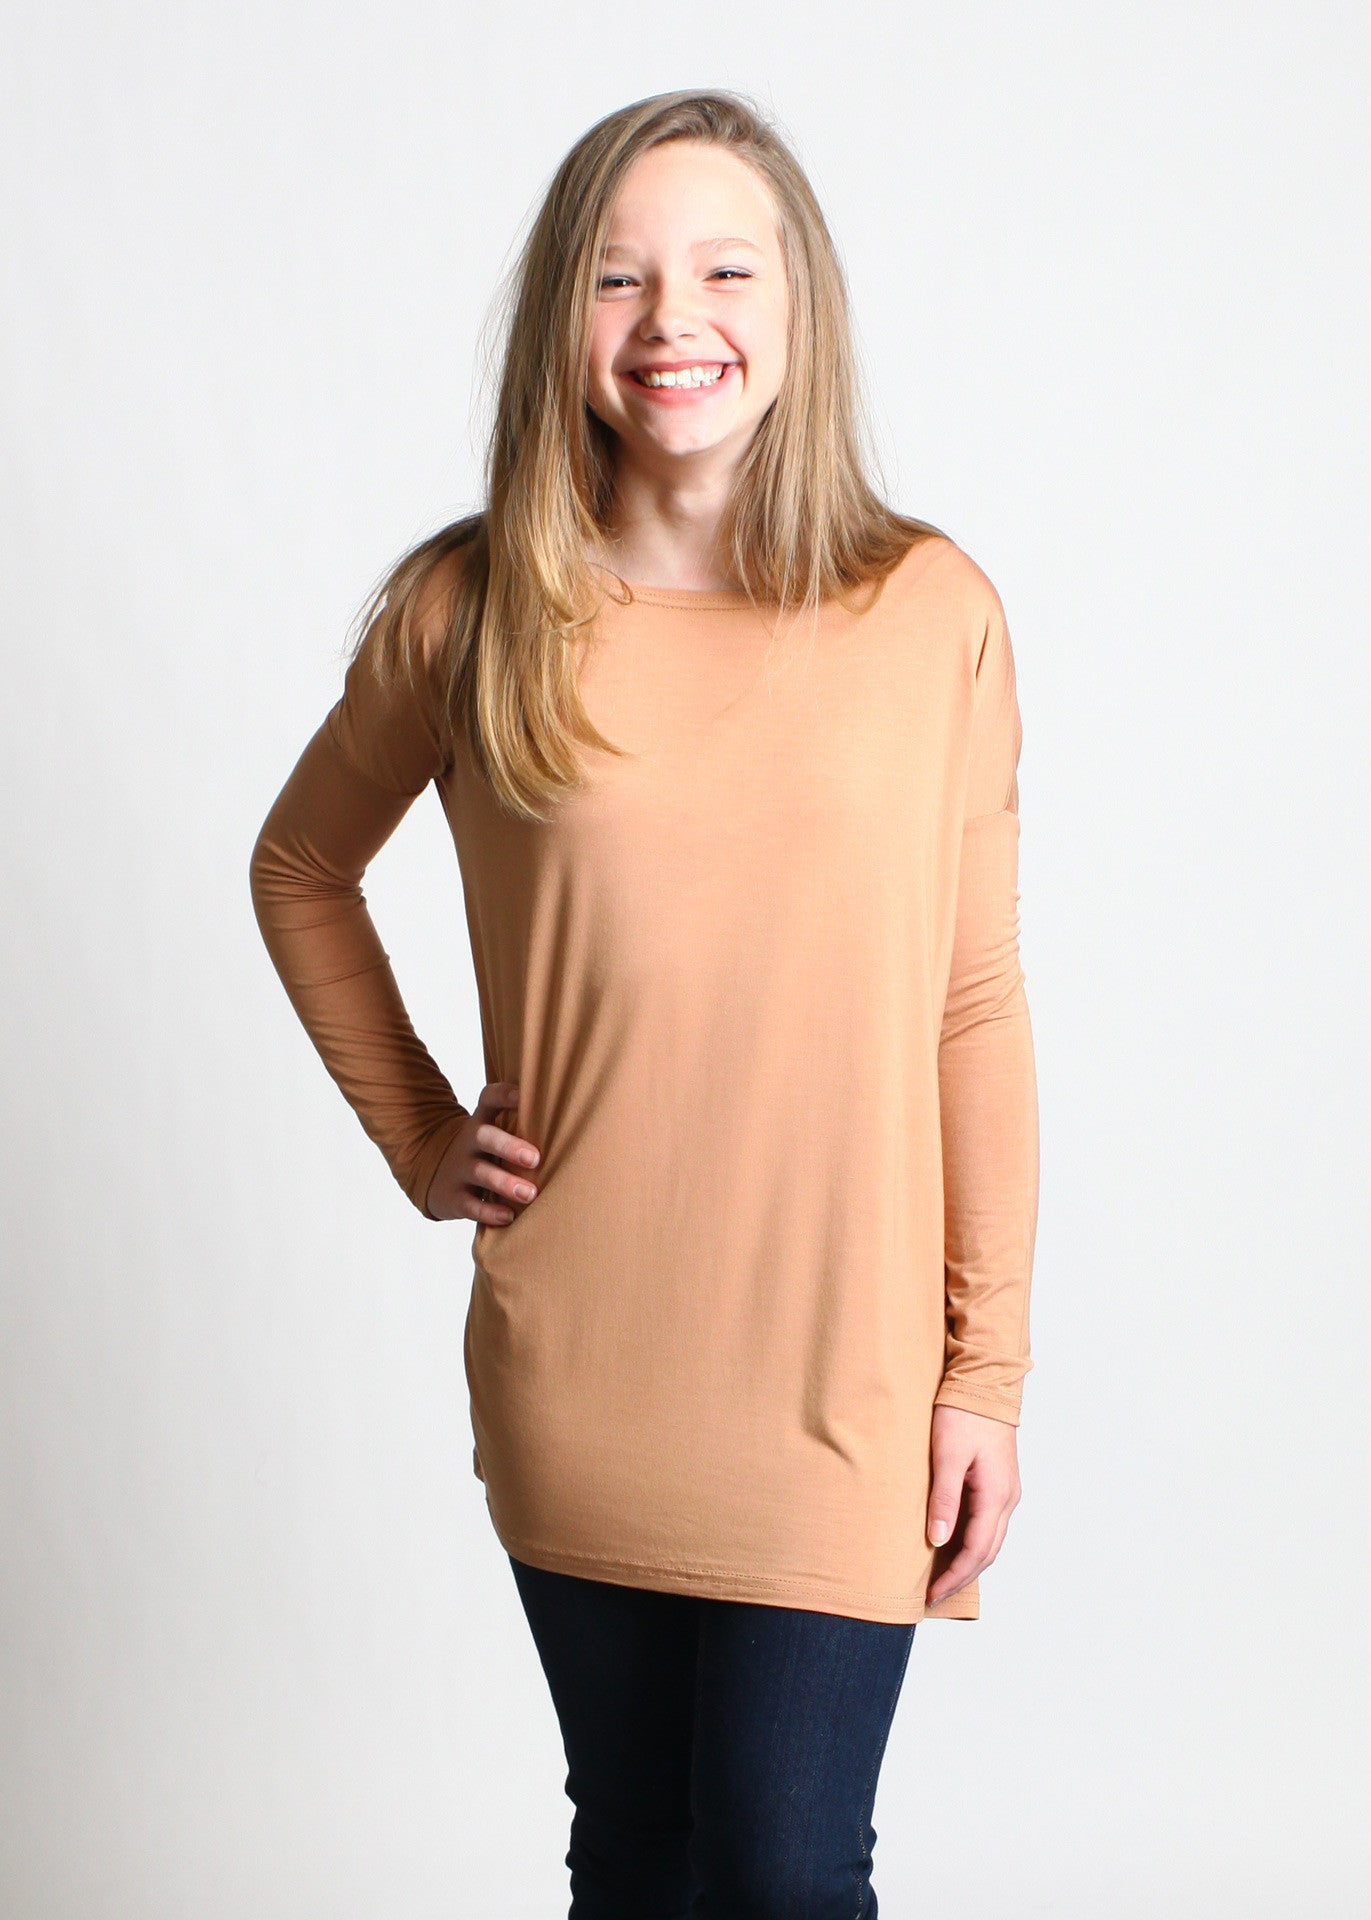 Original Kids Long Sleeve Top - Piko Clearance Center - 12